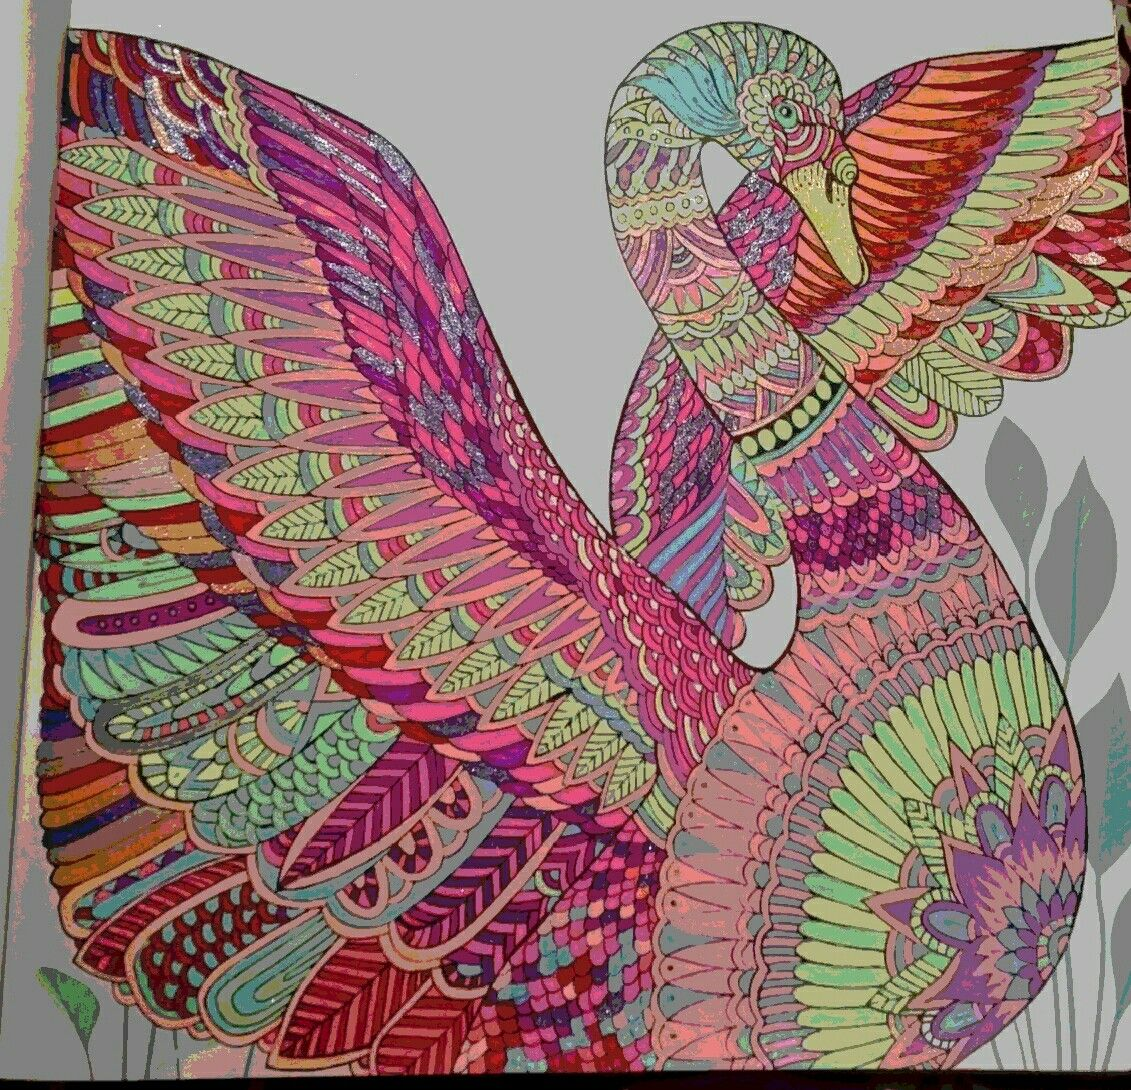 Swan The Aviary Colouring Book Coloring Book Art Basford Coloring Book Coloring Books